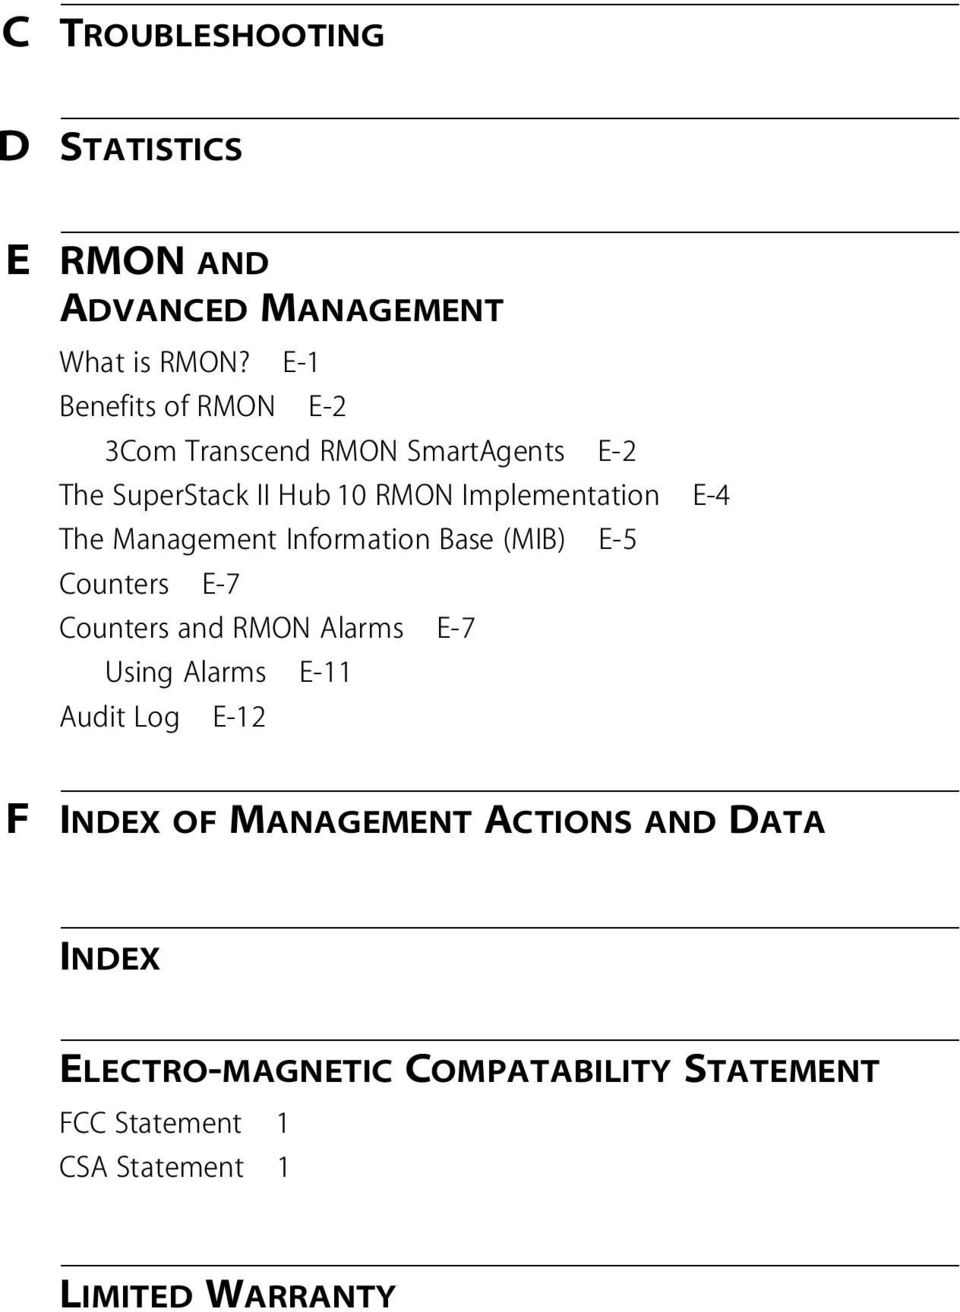 The Management Information Base (MIB) E-5 Counters E-7 Counters and RMON Alarms E-7 Using Alarms E-11 Audit